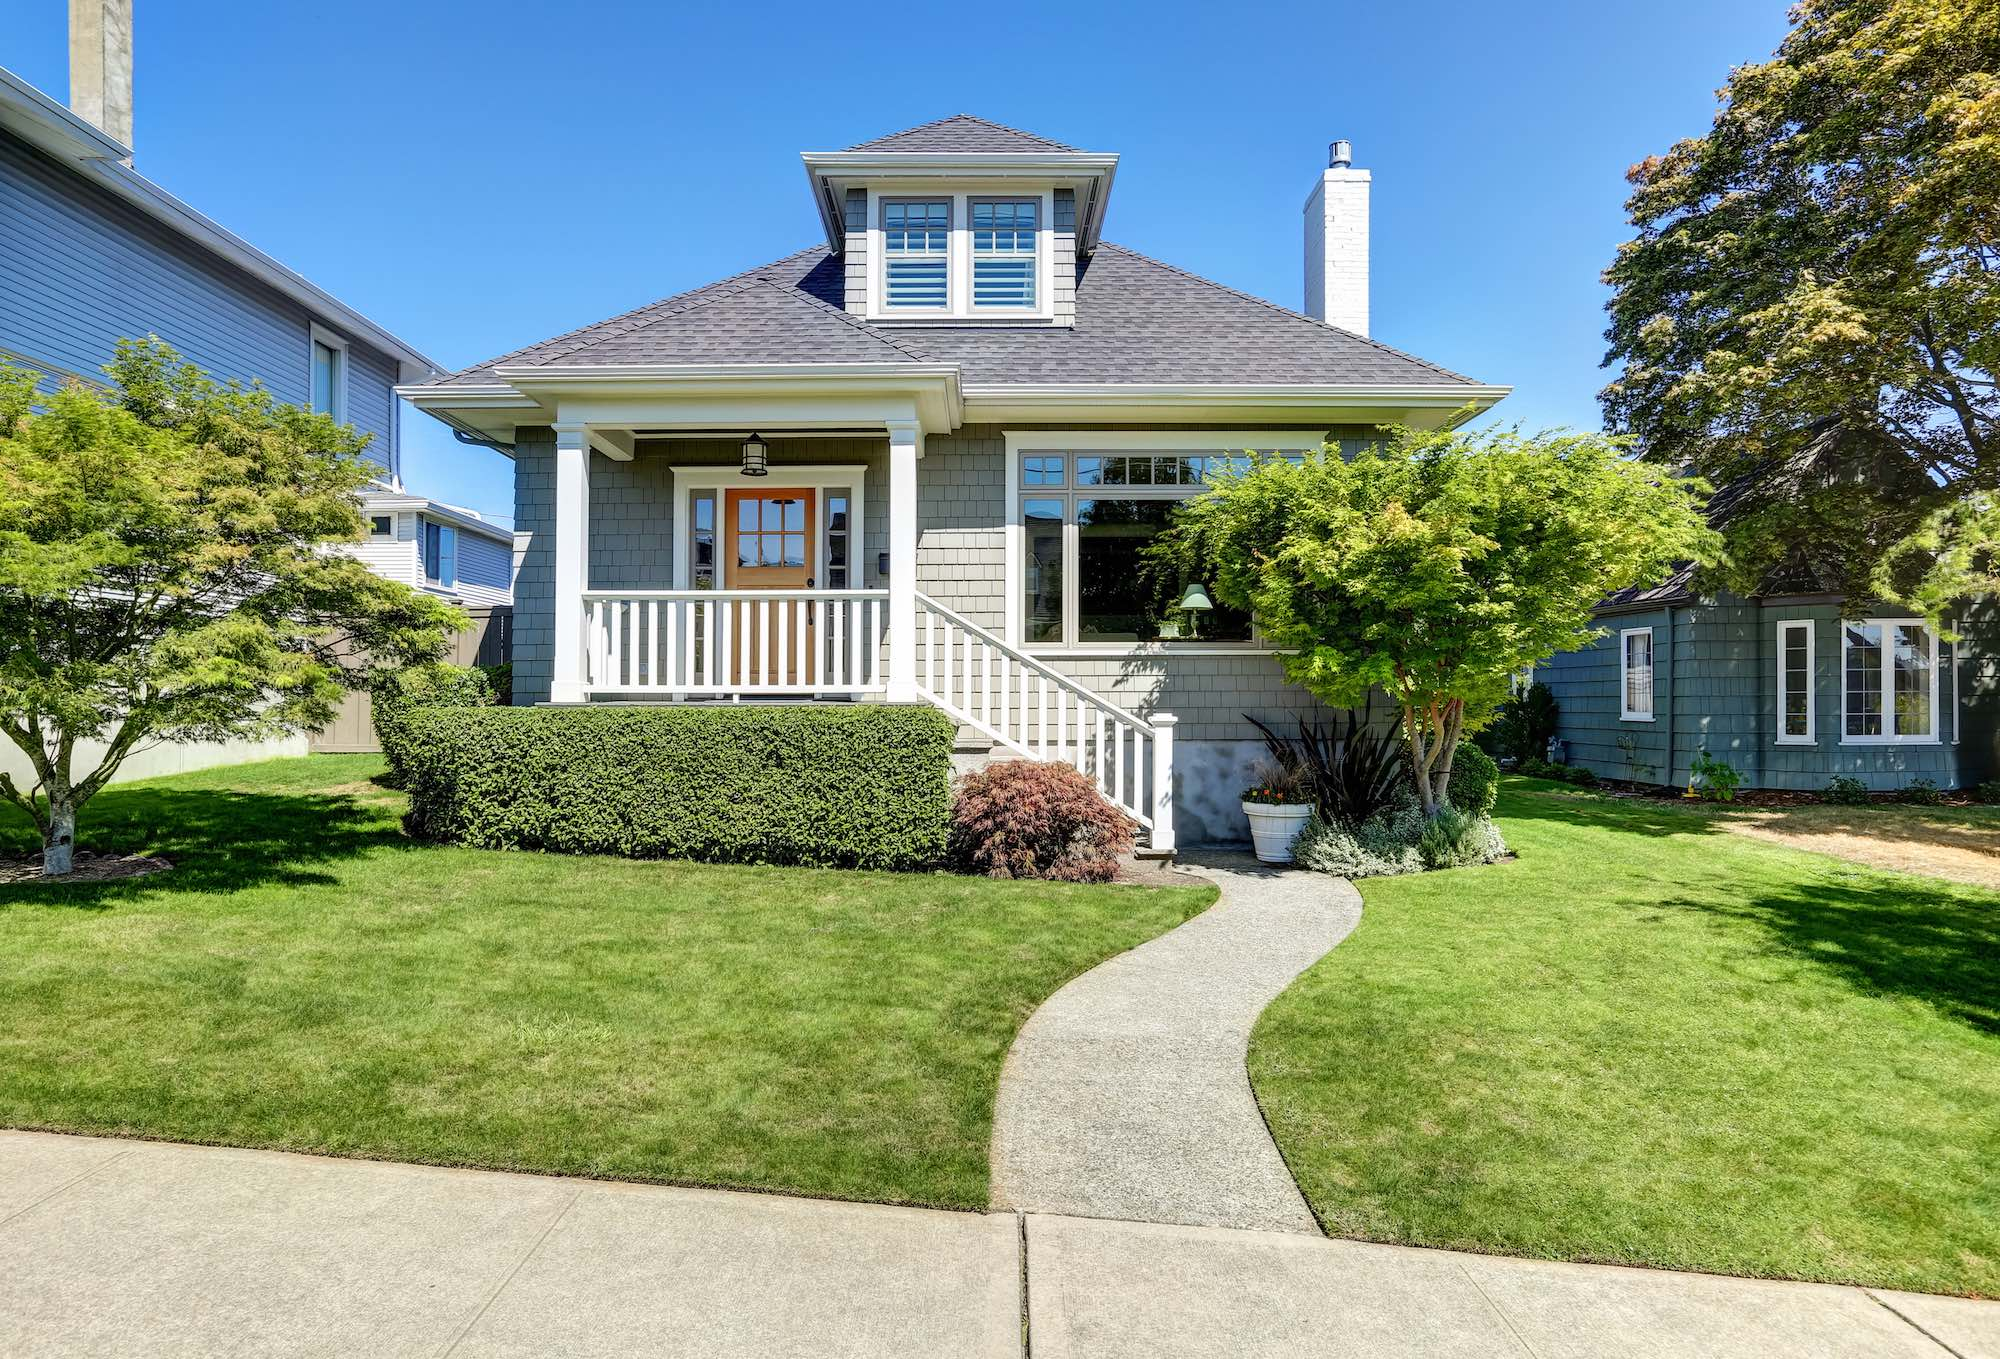 Sellwood is known for its charm and livability.